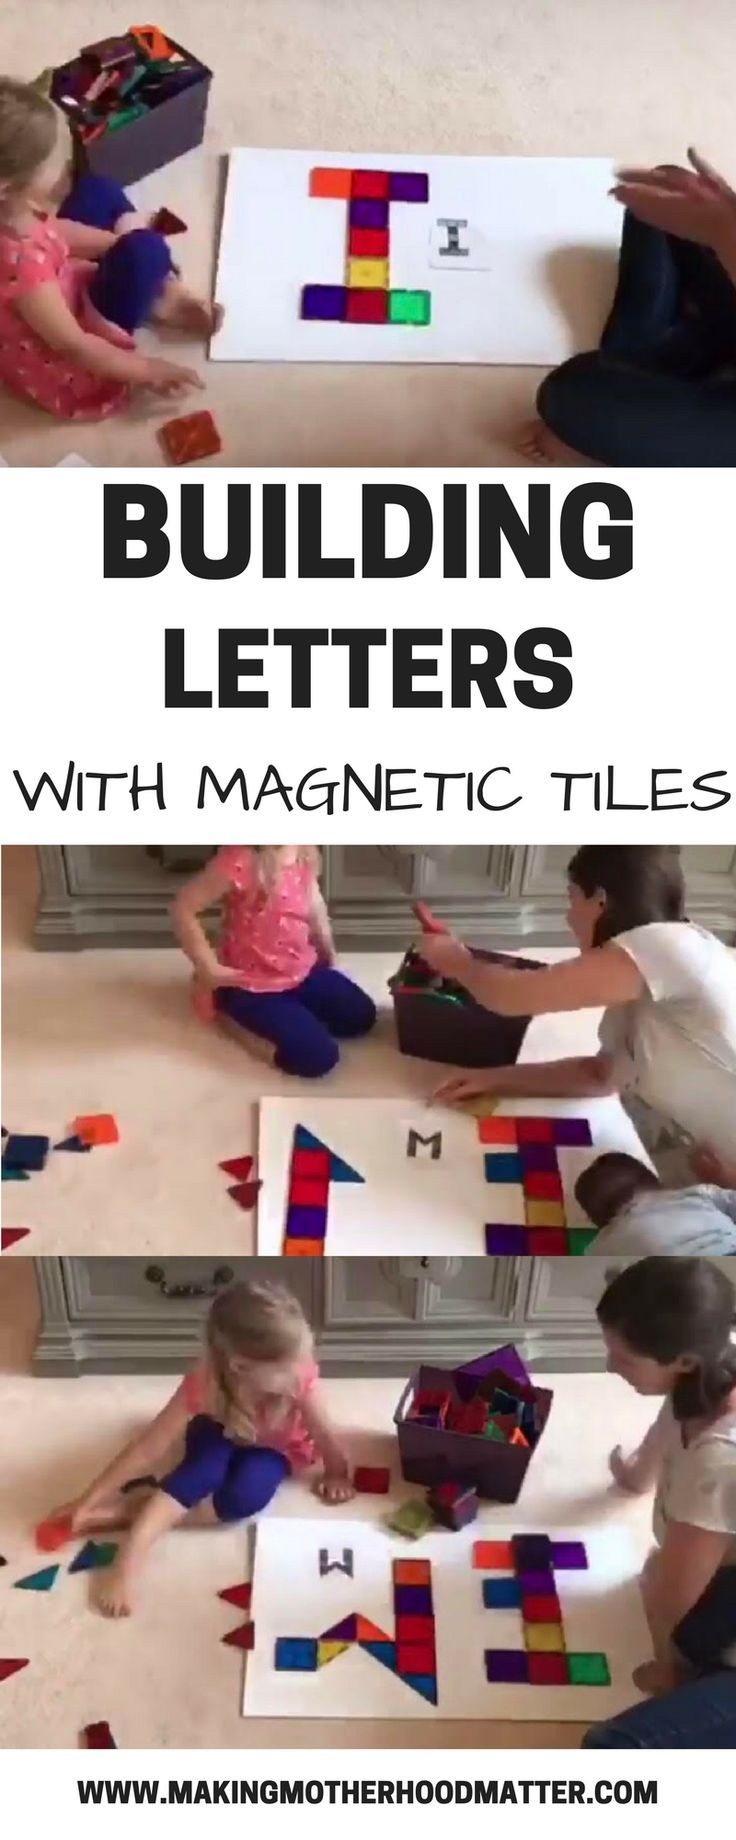 Building Letters with Magnetic tiles (ages 2-4) is so much fun! We printed off a template with all of the letters and had a blast creating each one. This is a great activity for spatial awareness and literacy. Double win! Tap the link to see how we made ours. #handsonlearning #kidsactivity #toddlers #preschooler #activitiesforkids #sensoryplay #learningthroughplay #homeschool #ECE #literacy Via @AmyatMMM